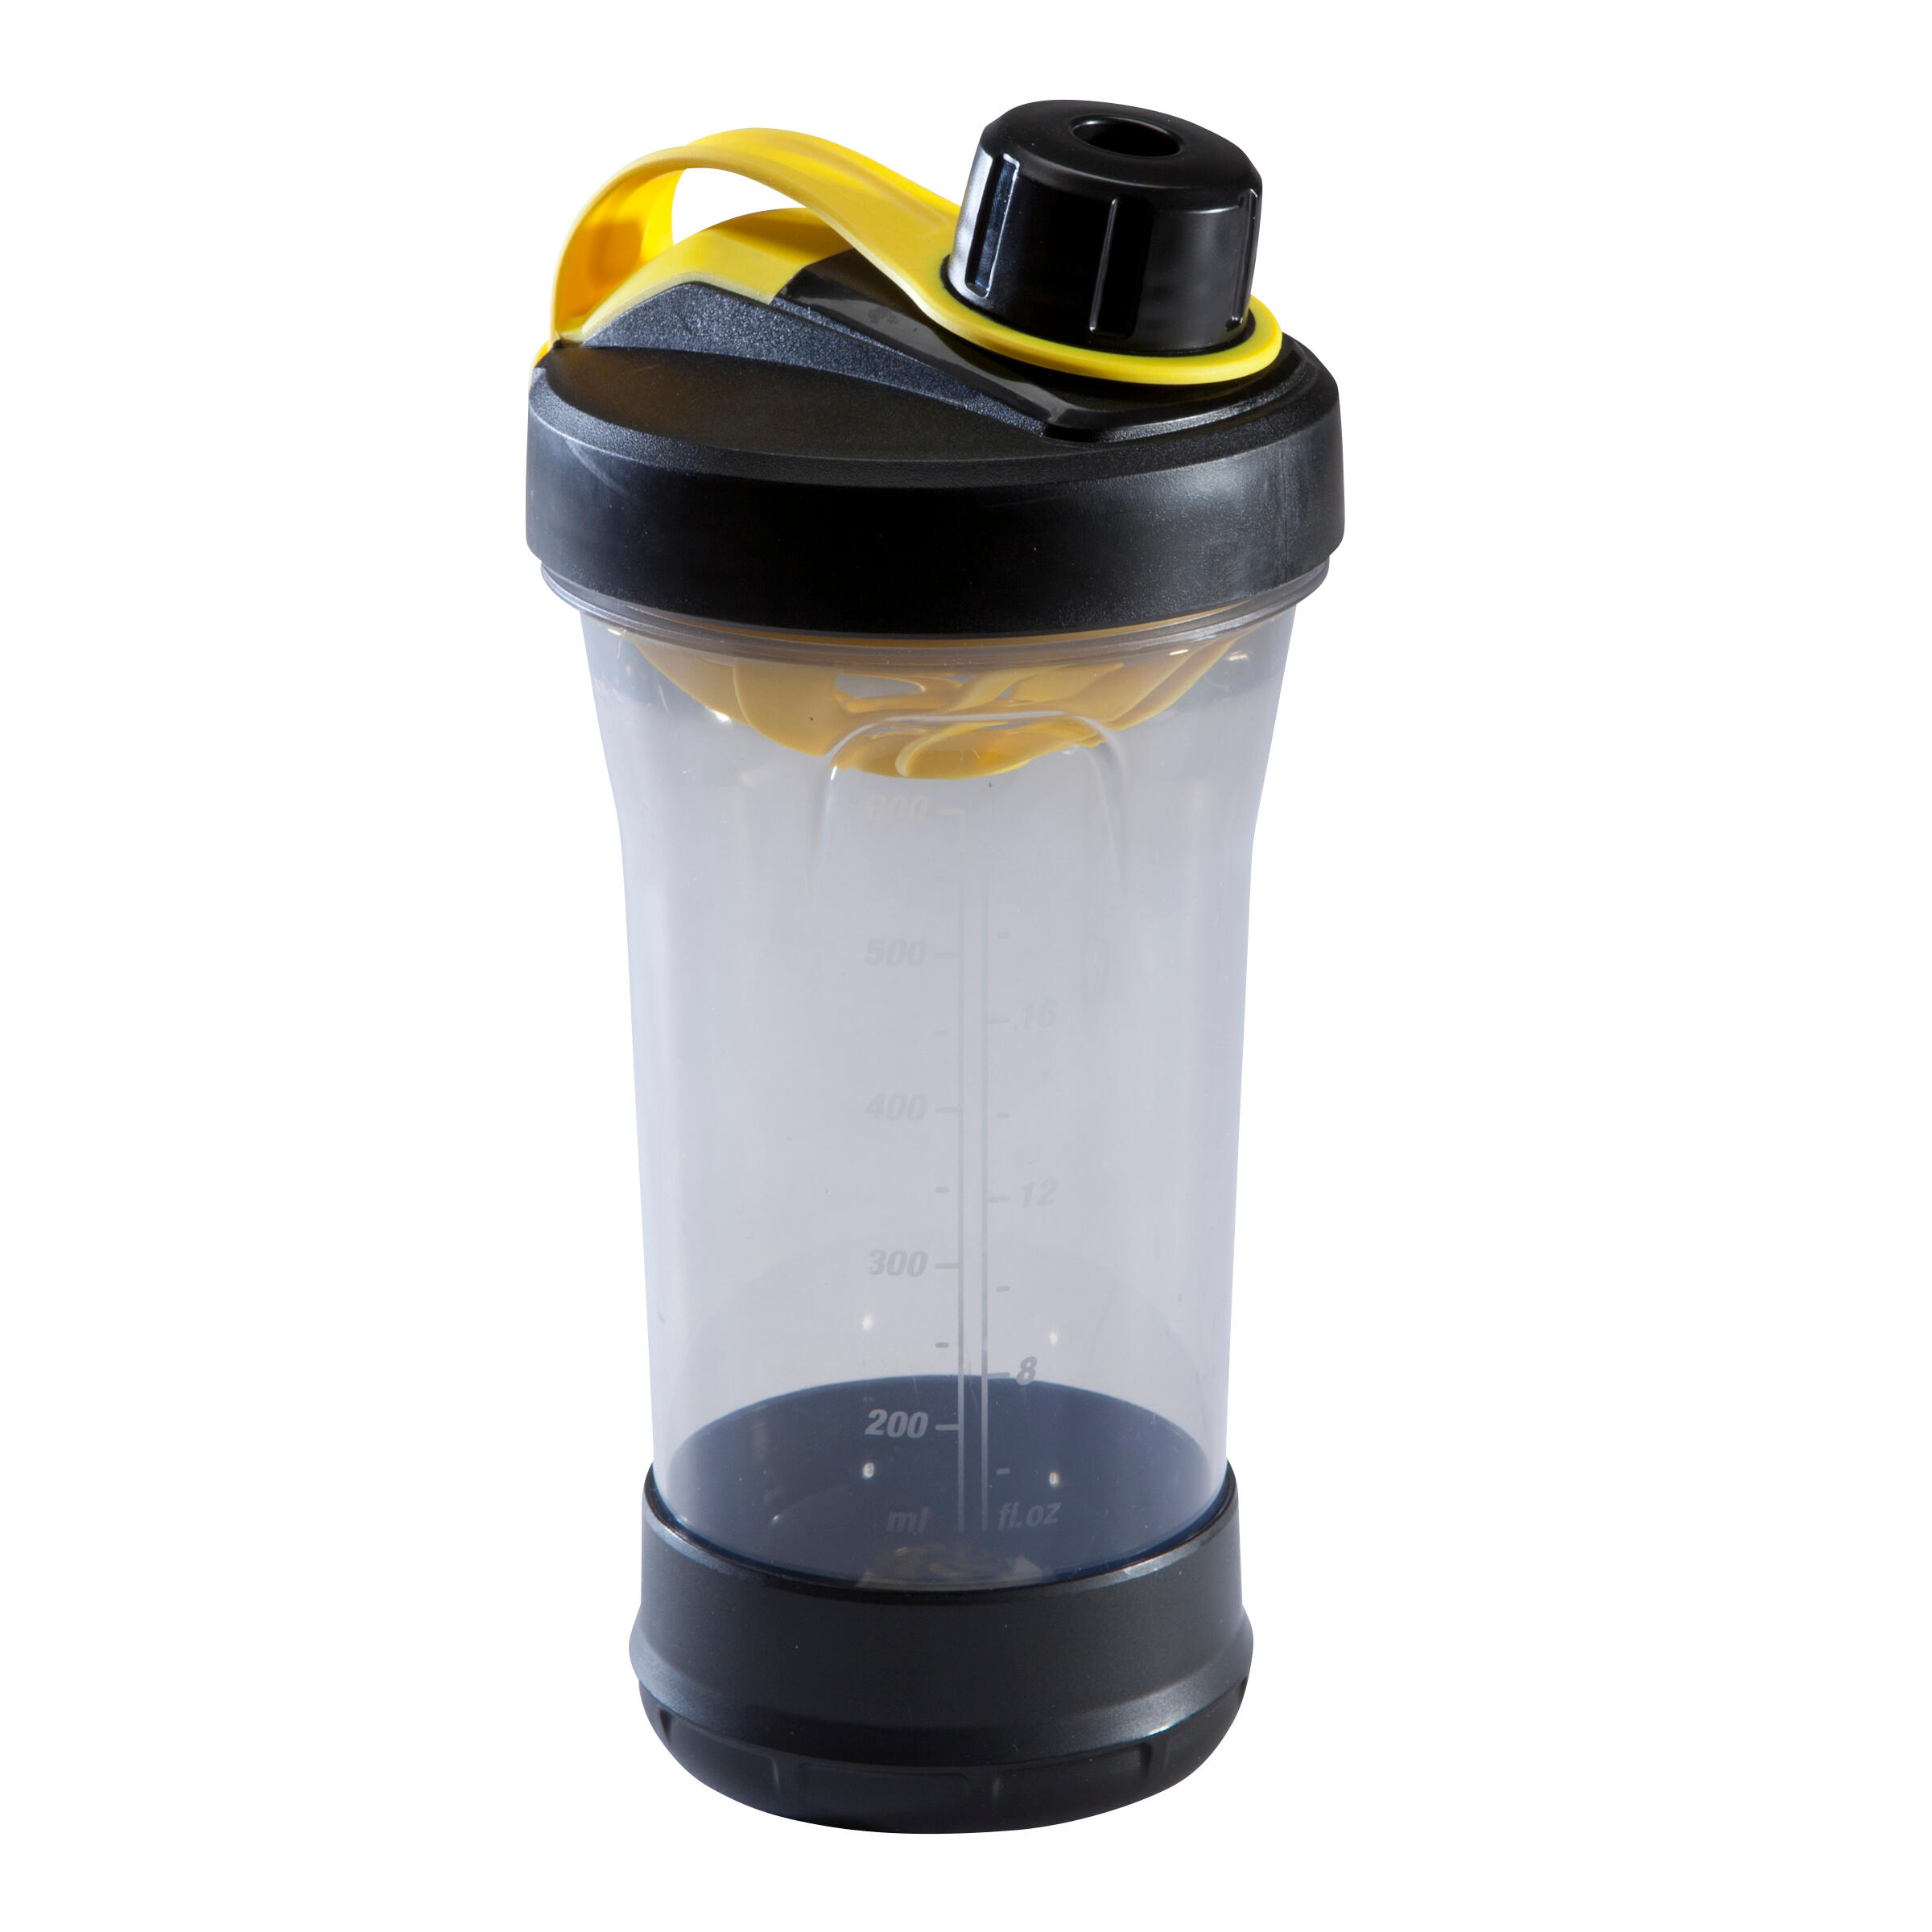 SHAKER Negro-Amarillo 700 ml